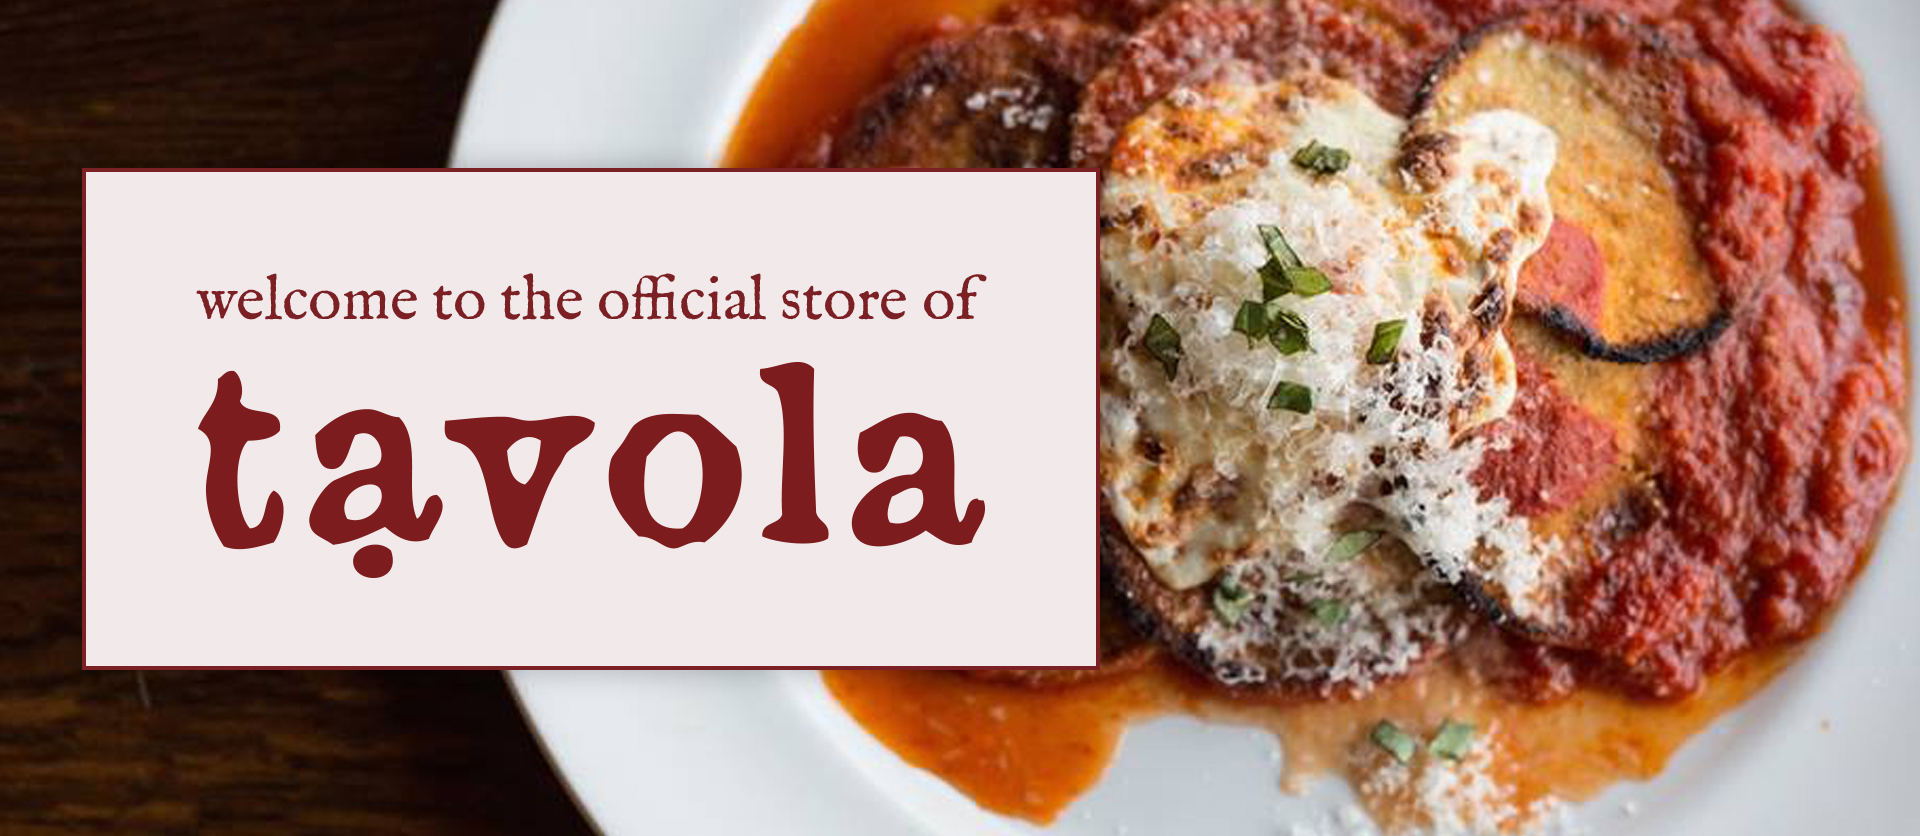 Welcome to the official store of Tavola Restaurant